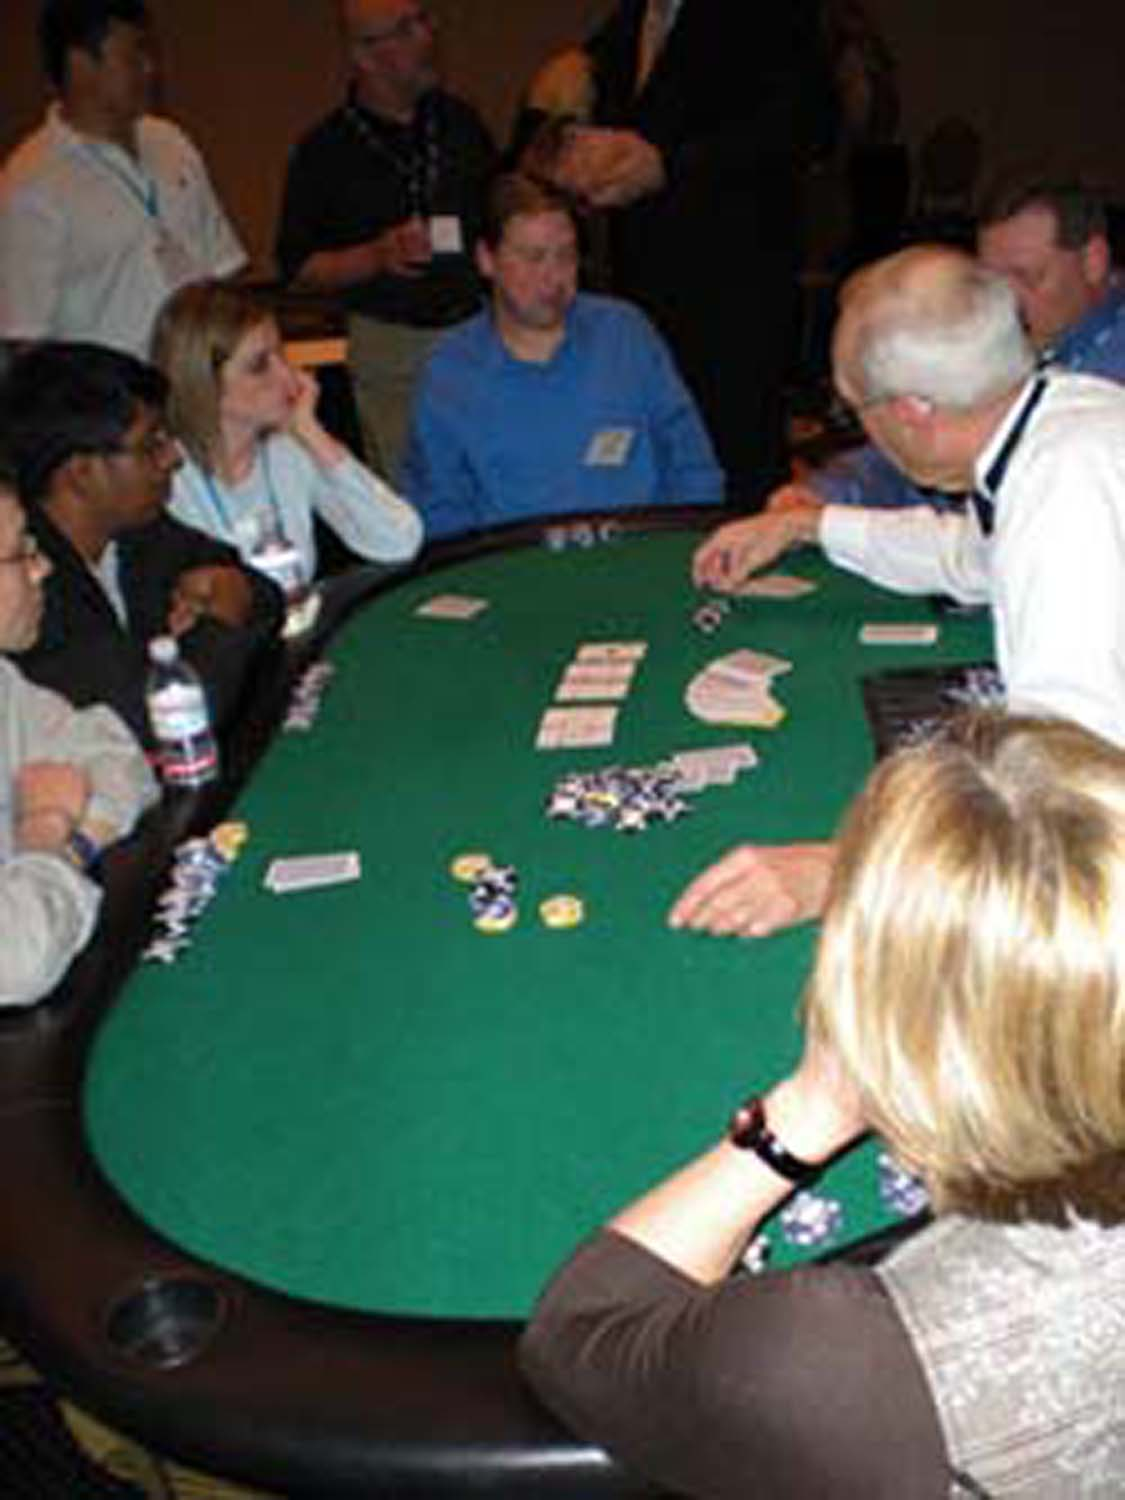 Sandia casino poker tournaments